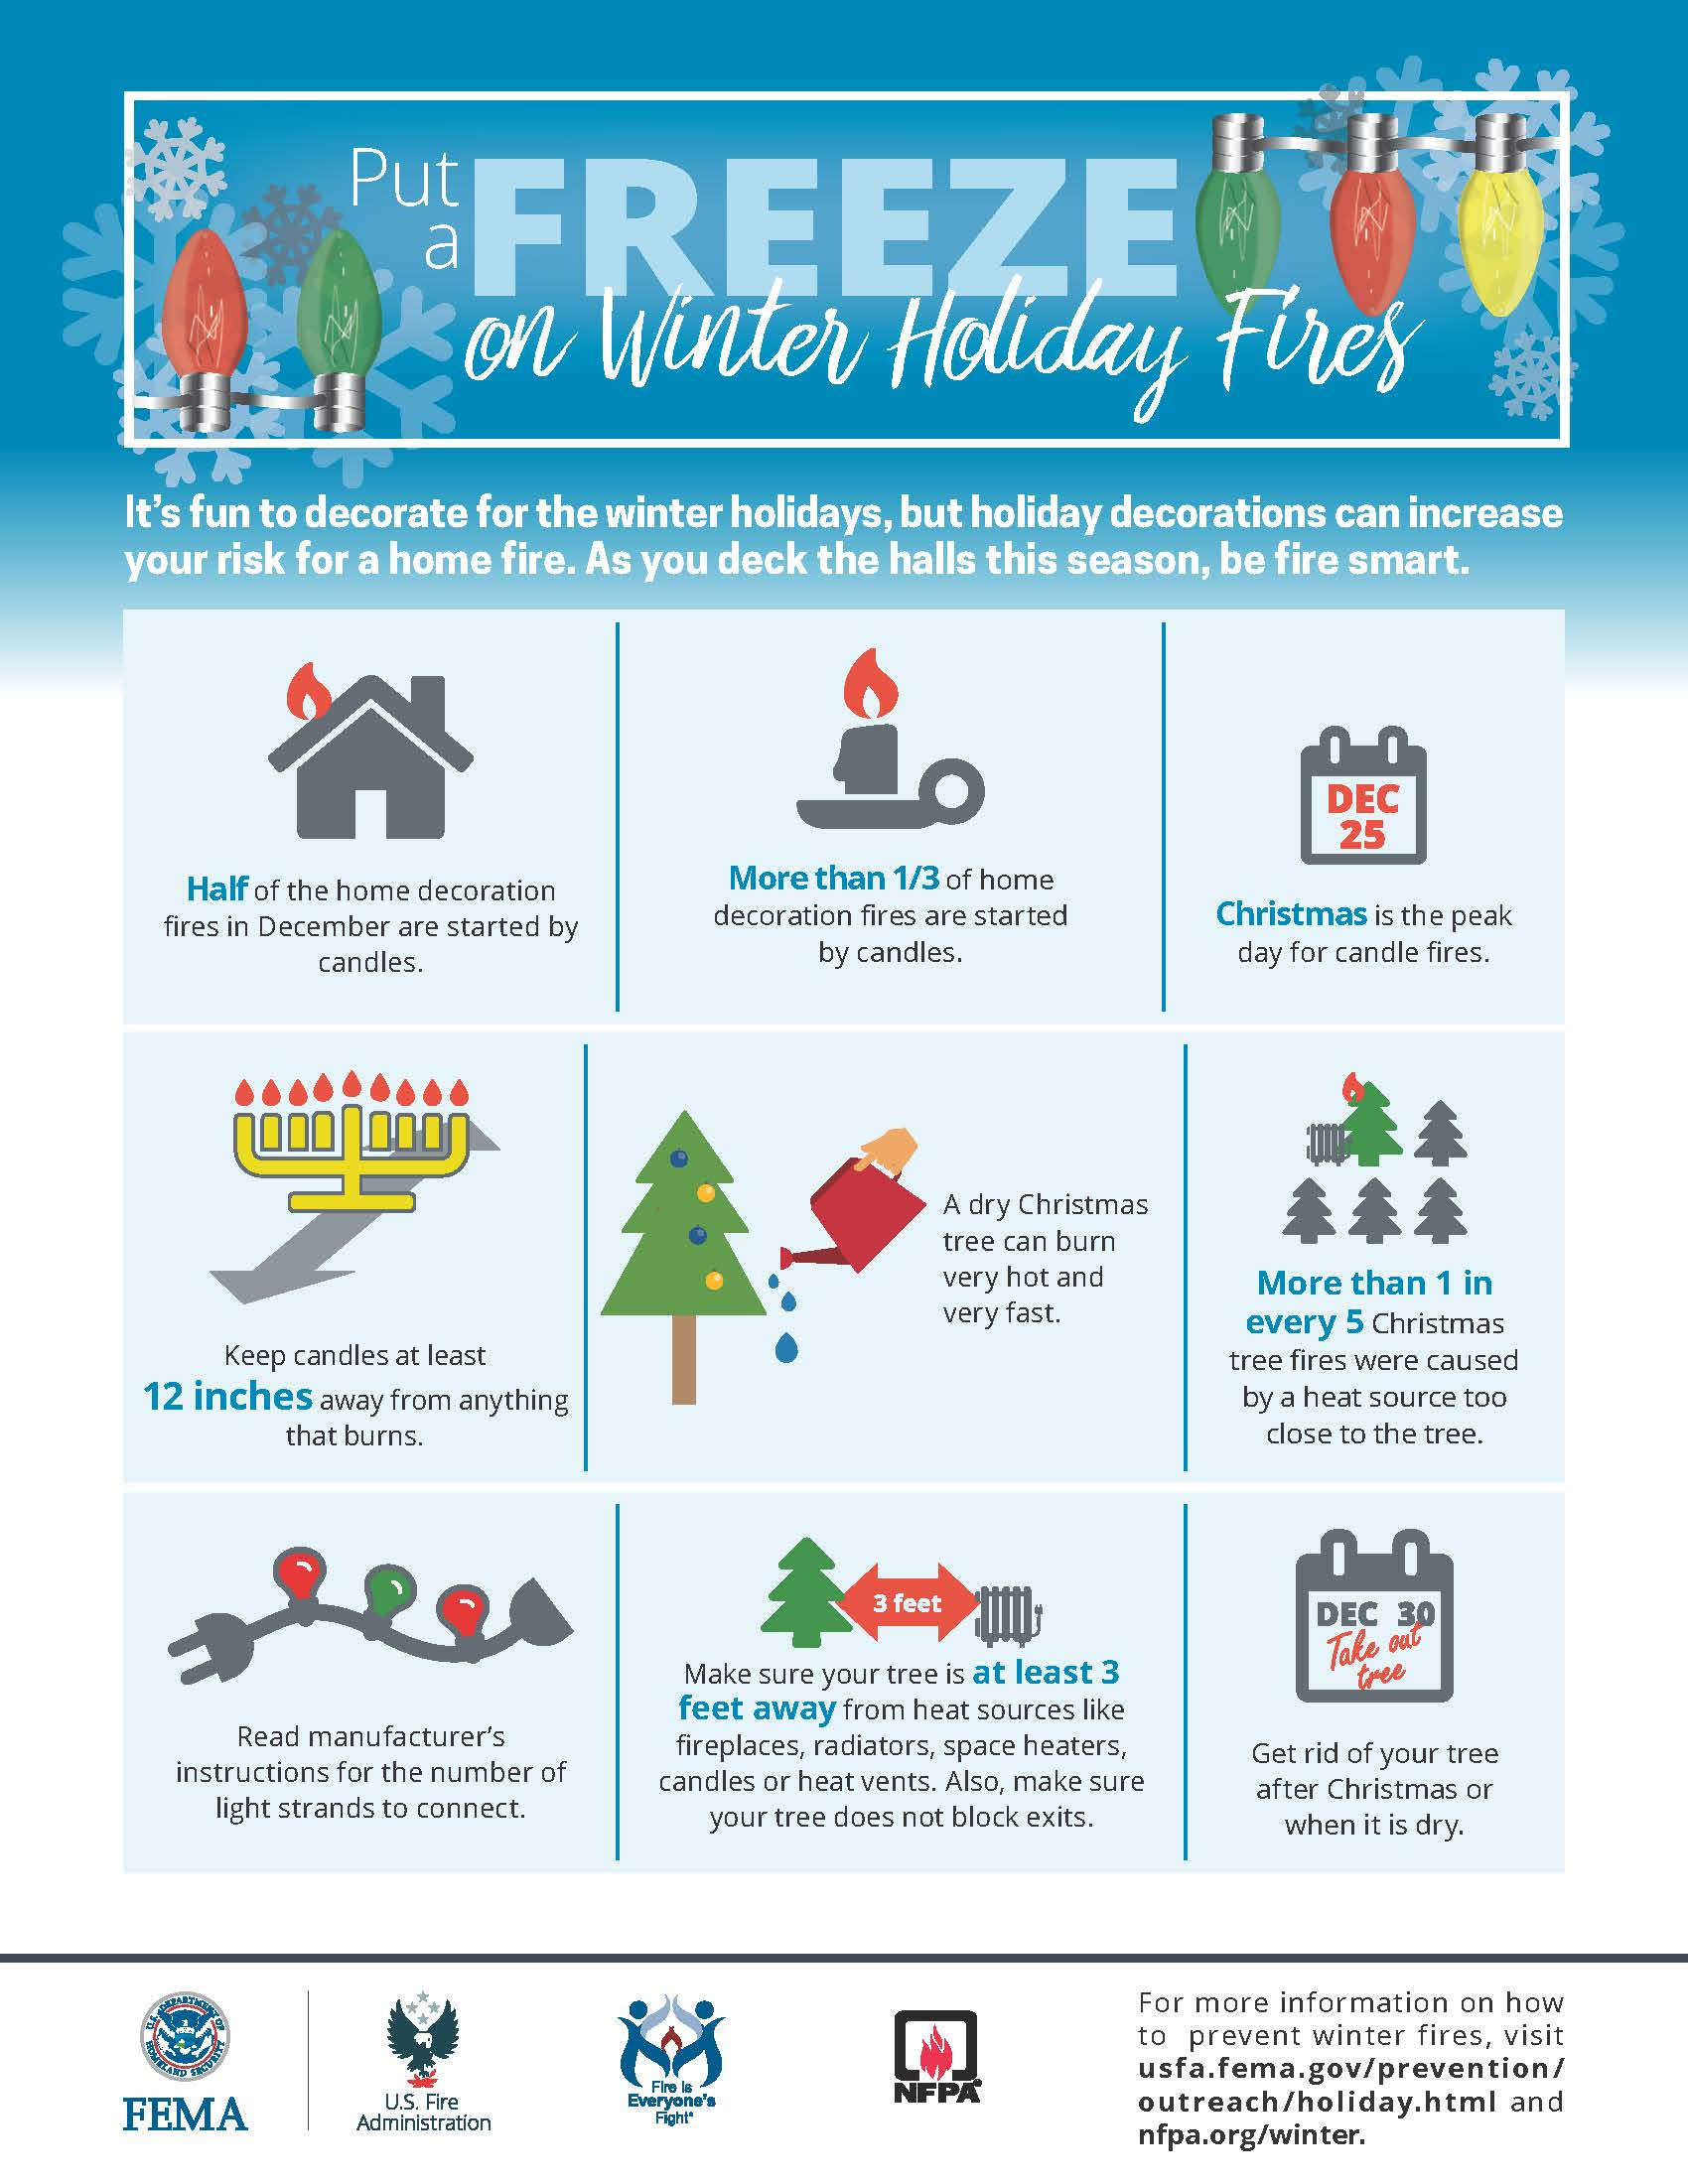 winter-holiday-fires-infographic-JPG